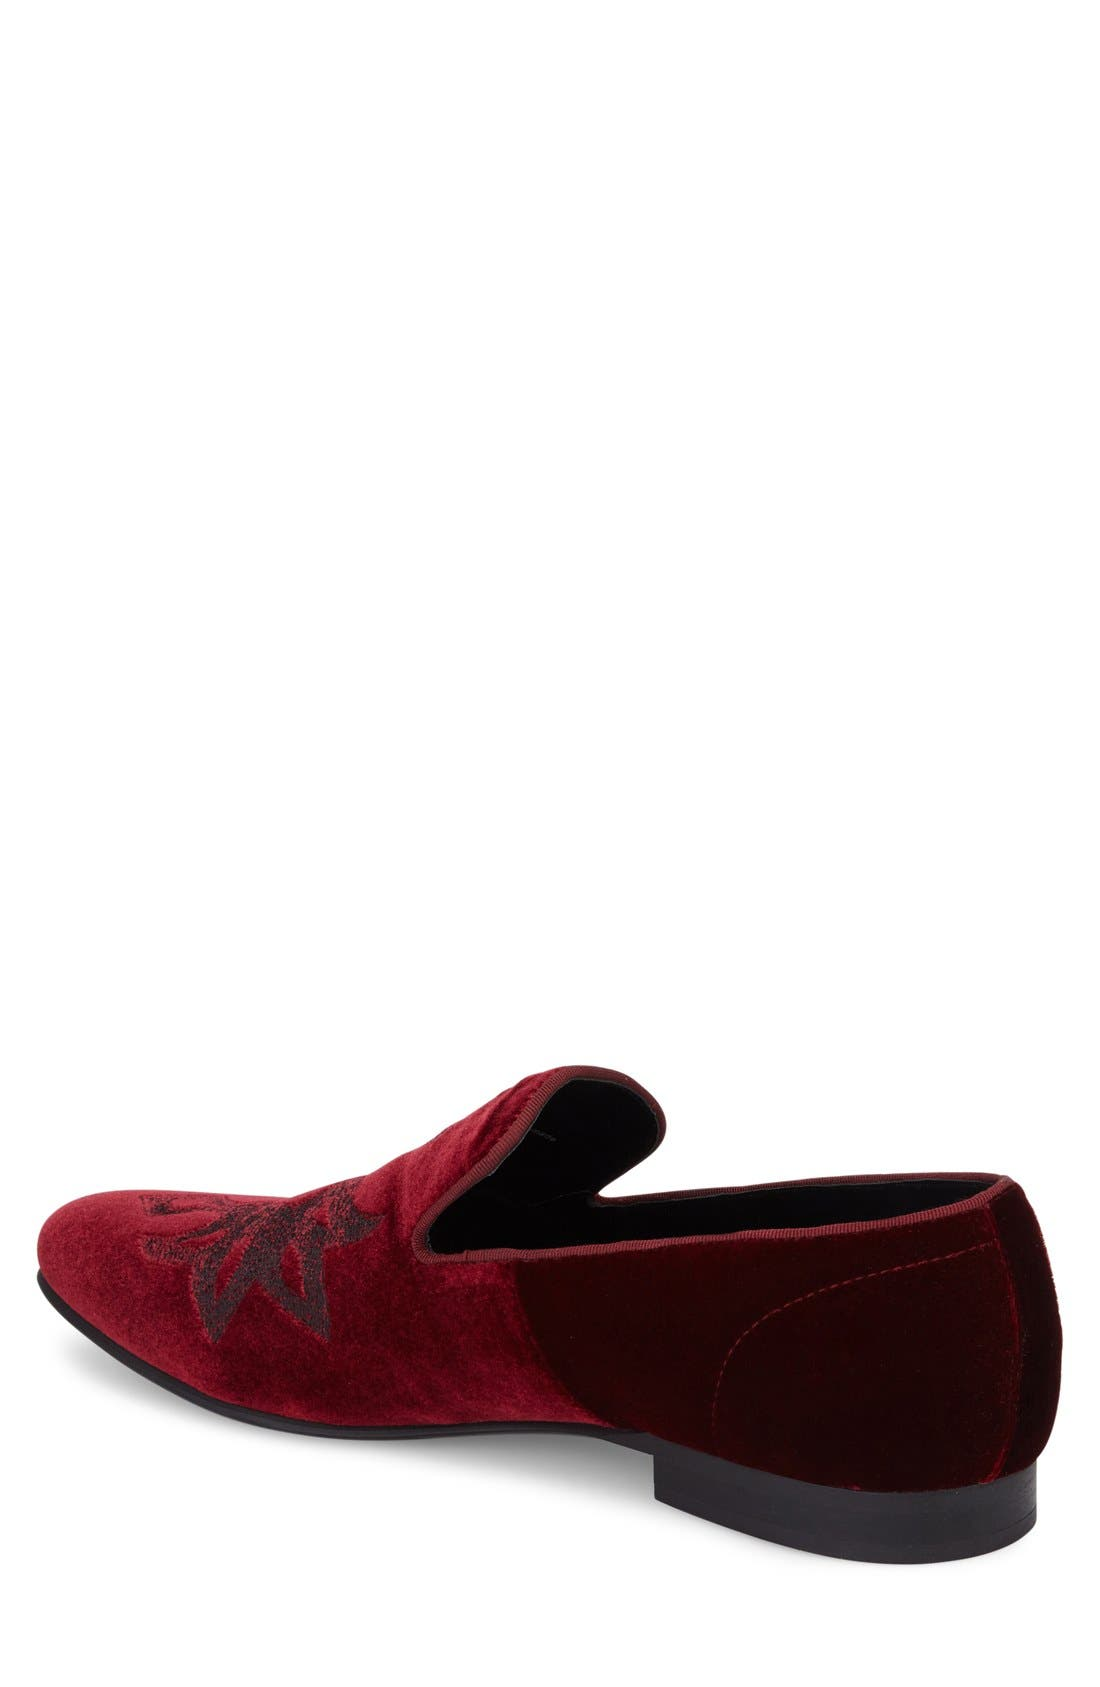 Men S Red Slip On Loafers Driving Shoes Moccasins Nordstrom